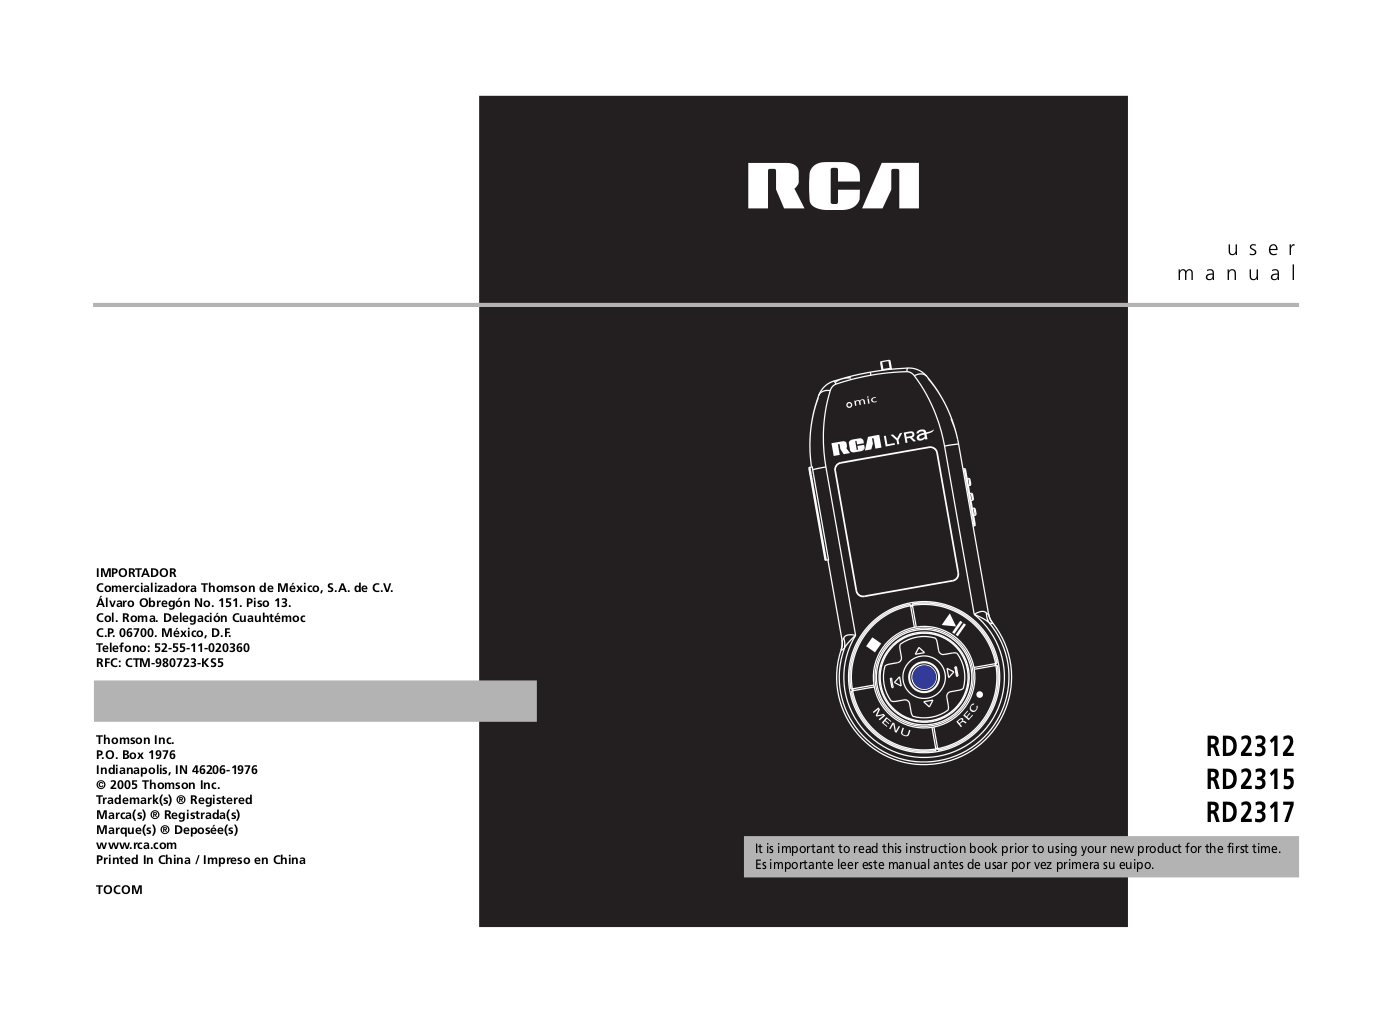 download free pdf for rca lyra rd2317 mp3 player manual rh umlib com instruction manual rca mp3 player rca mp3 player th1814 manual